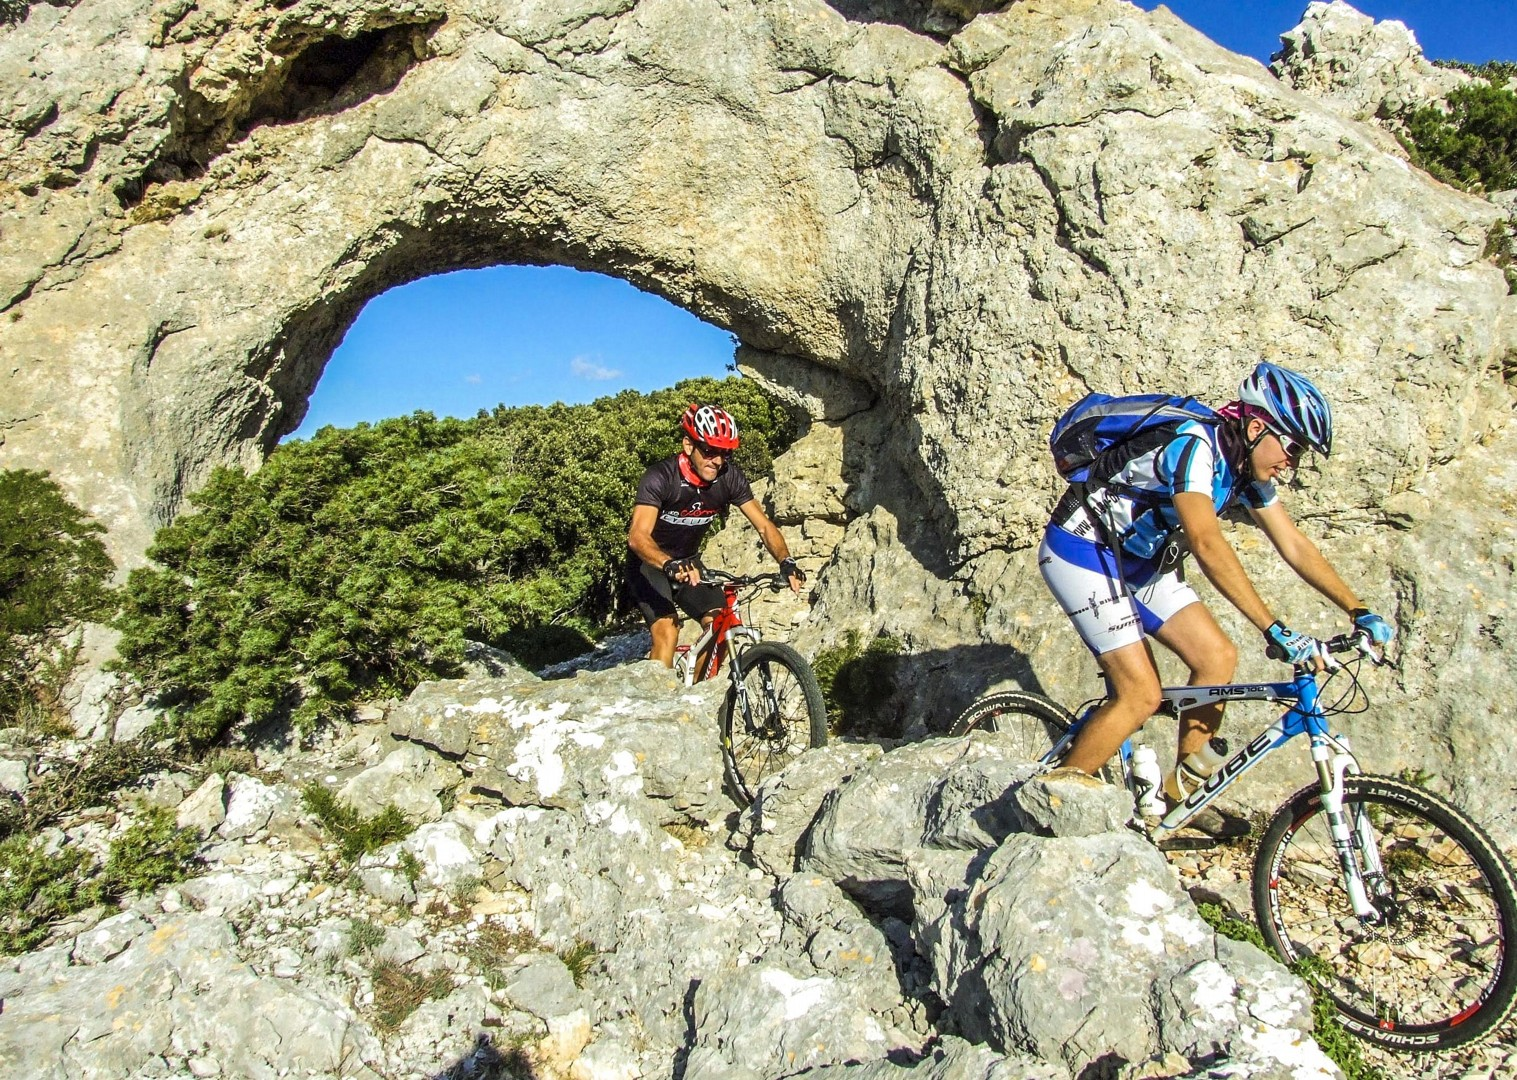 mountain-biking-tour-thrilling-remote-mountain-ranges-incredible.jpg - Italy - Sardinia - Coast to Coast - Self-Guided Mountain Bike Holiday - Italia Mountain Biking